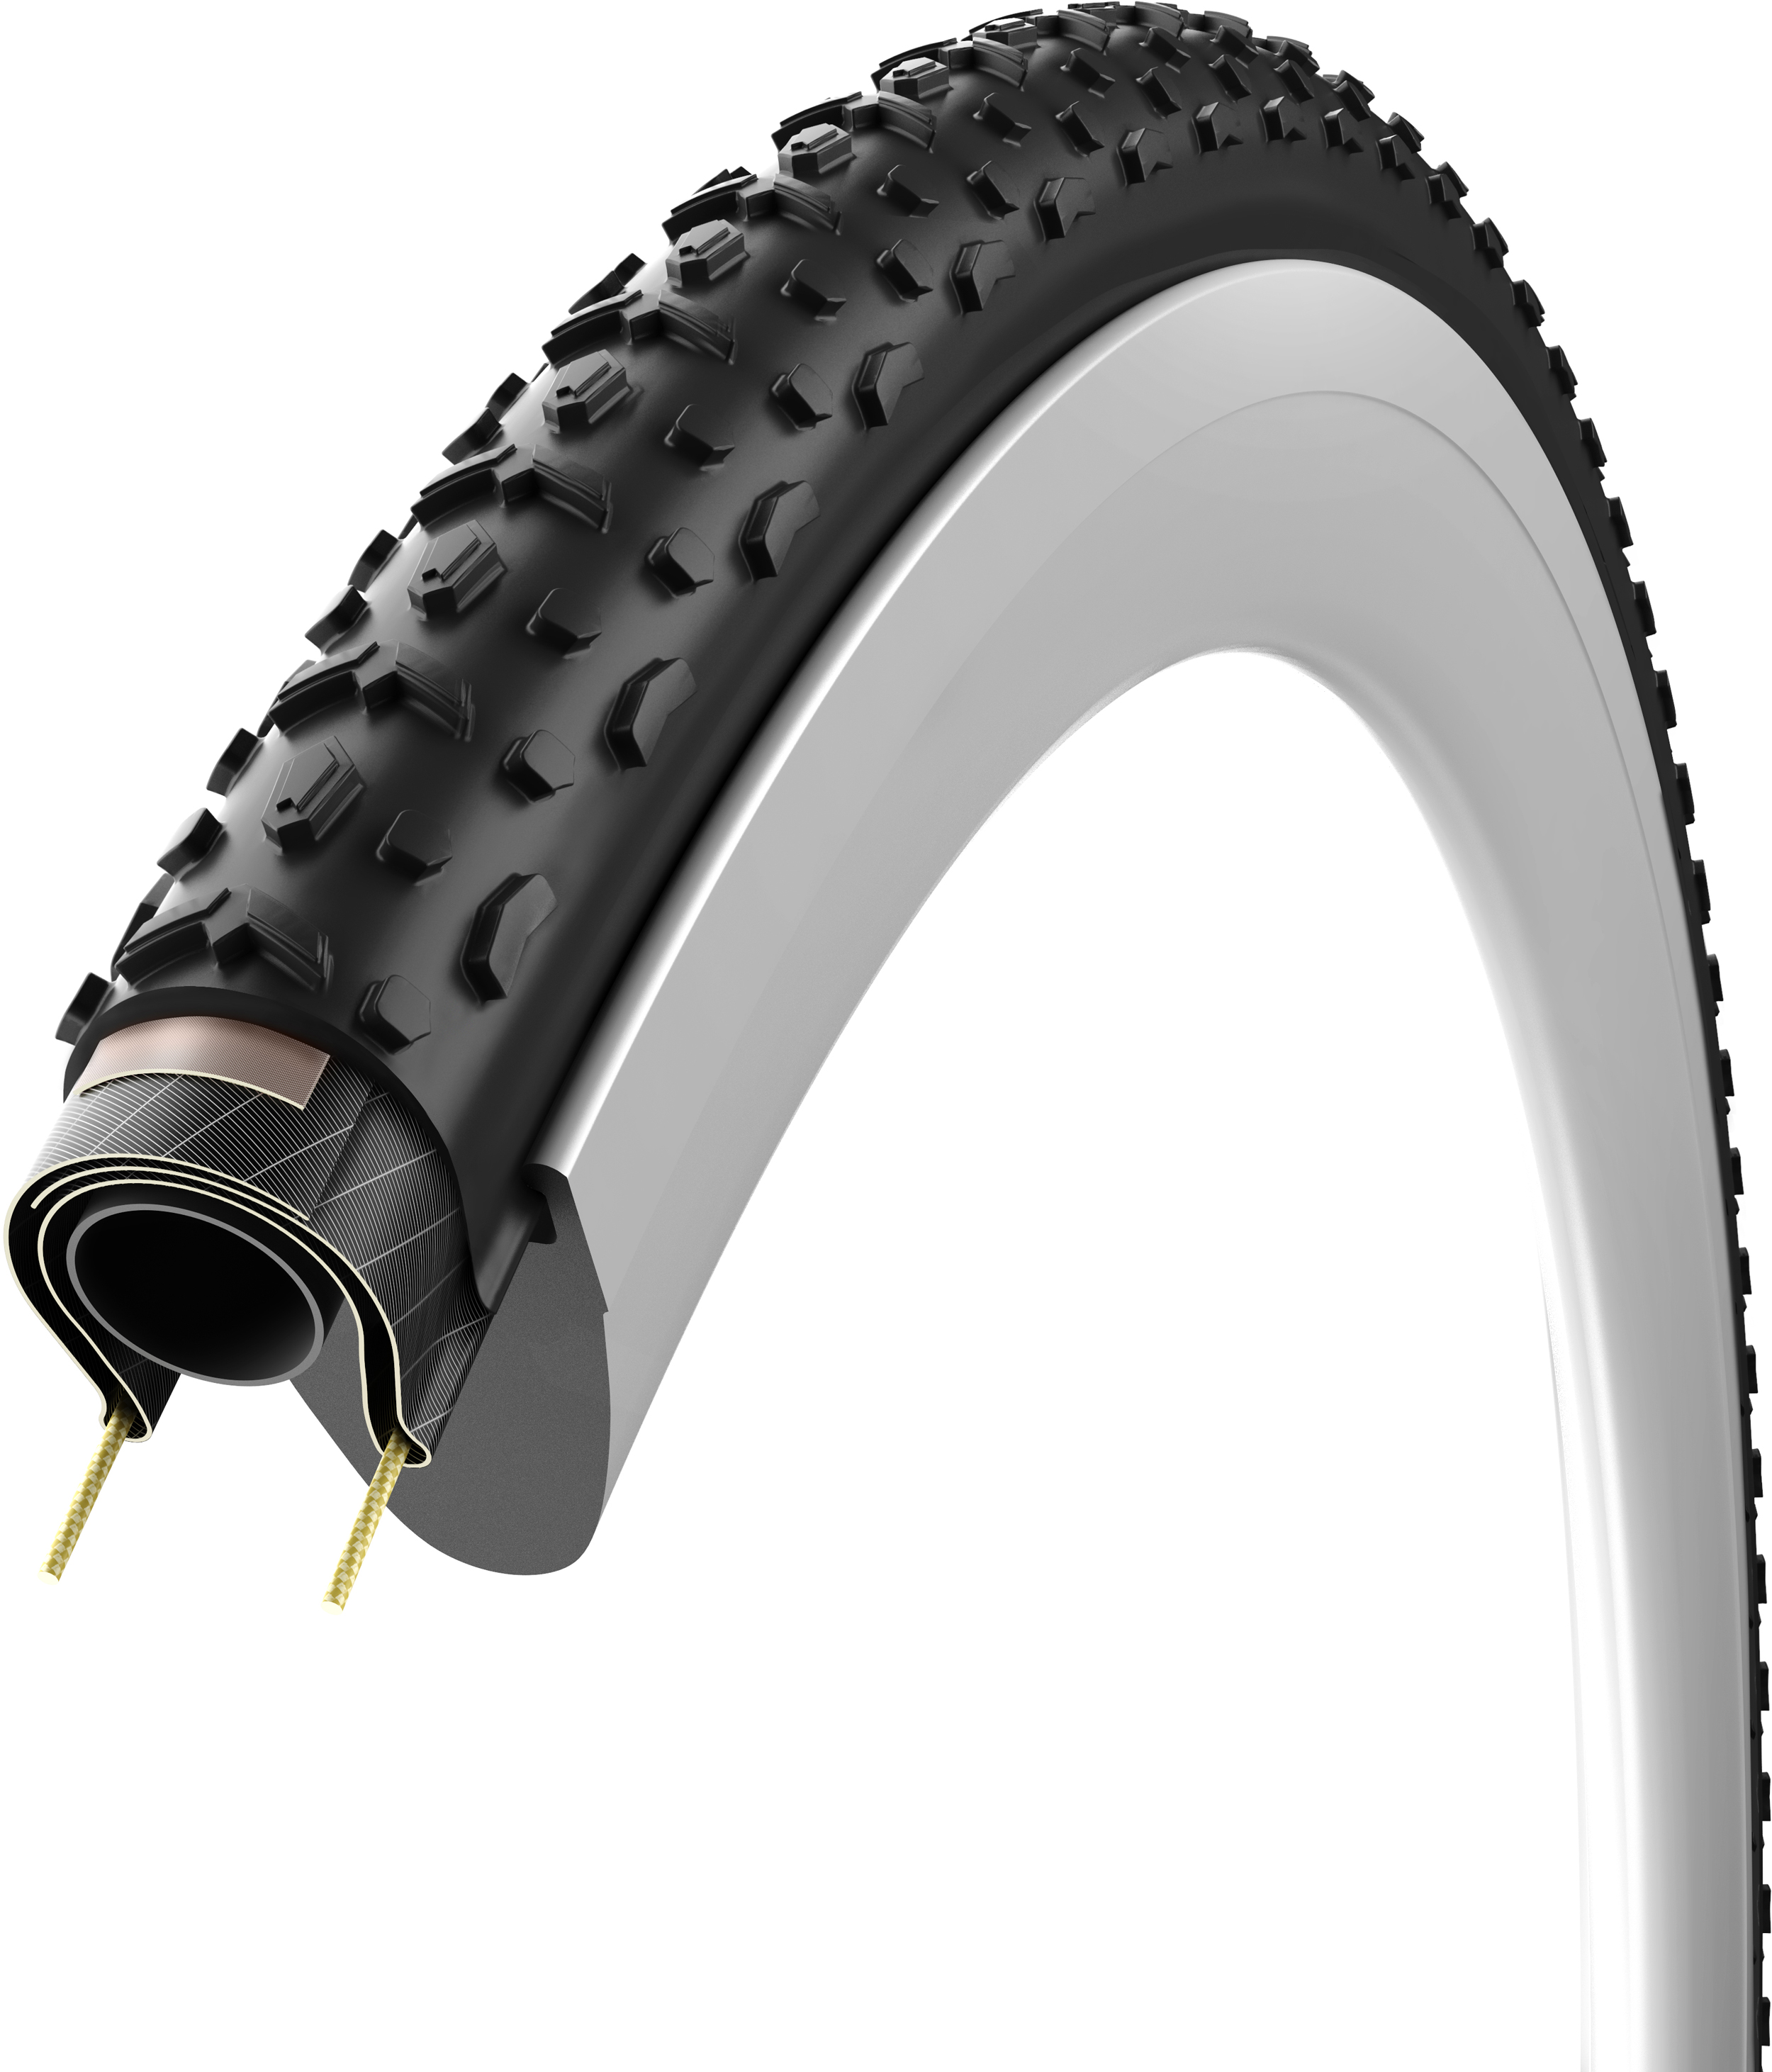 New Vittoria Cross XG Pro II Tire  Folding Clincher 700 x 31 Black CX Cyclocross